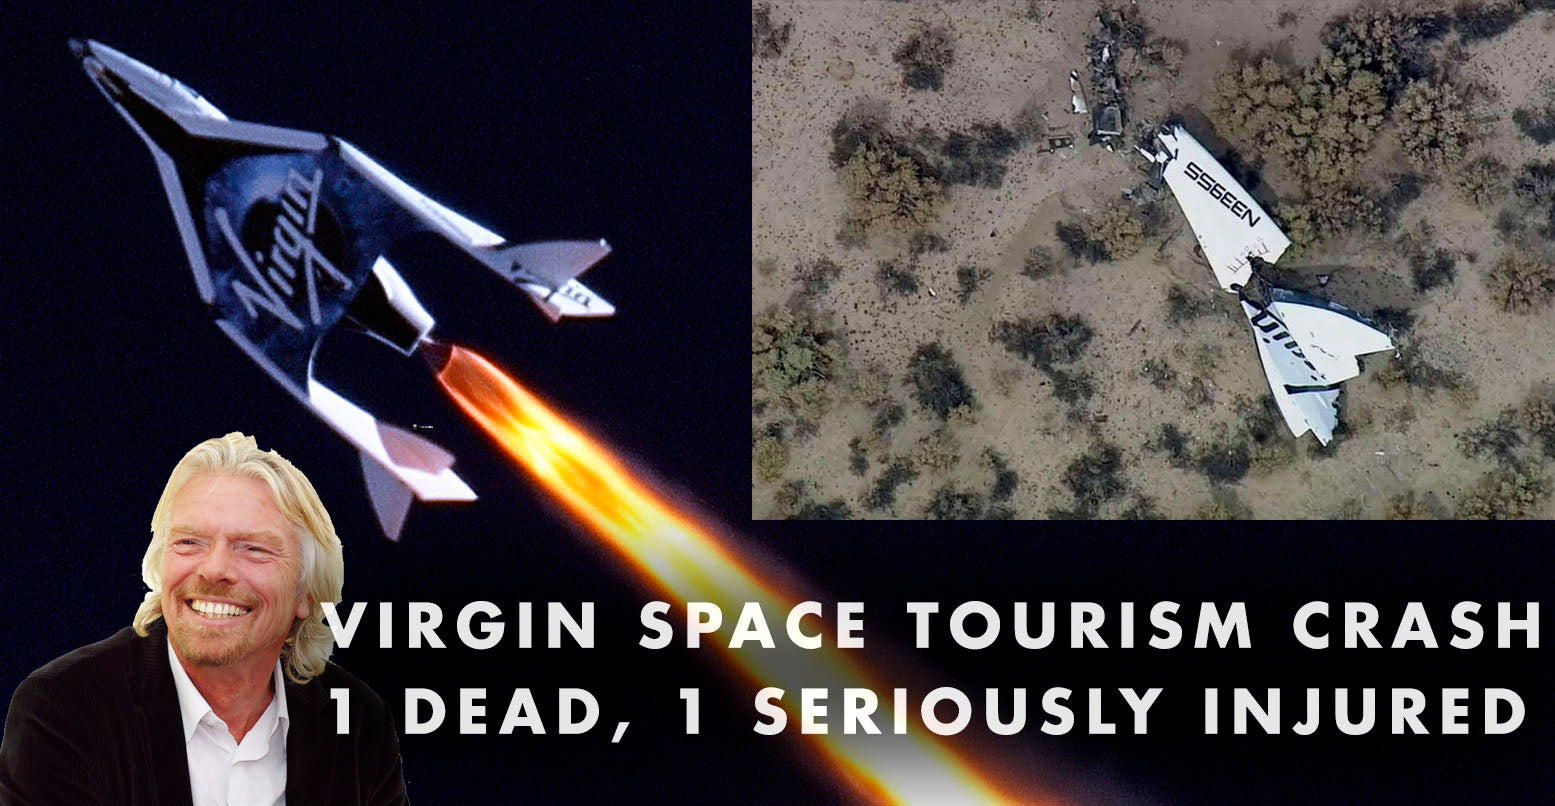 VIDEO: VIRGIN GALACTIC SPACE CRASH IN MOJAVE